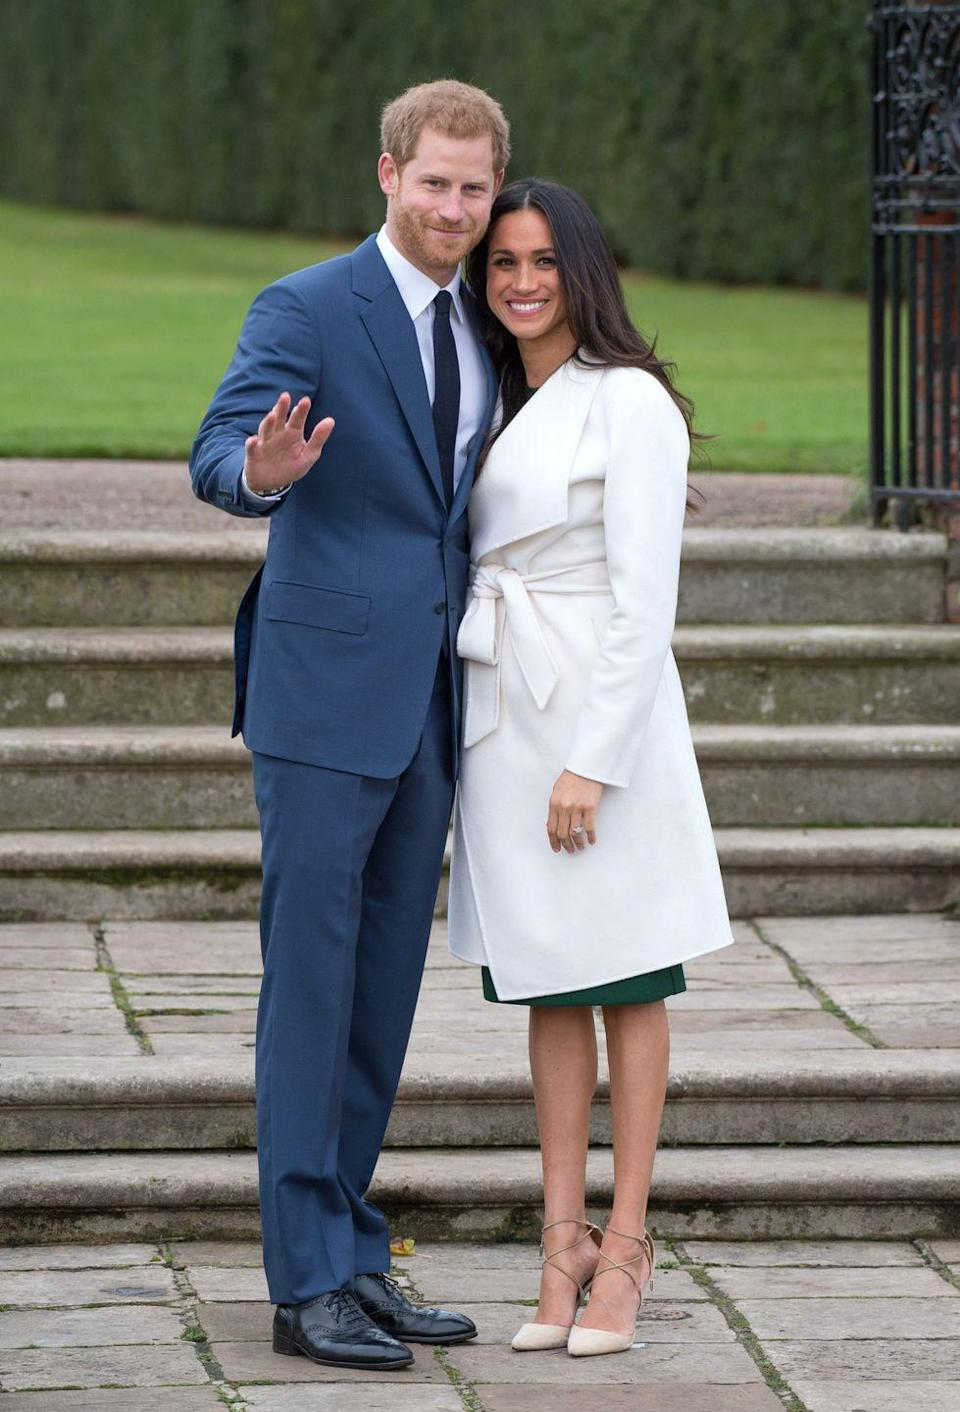 <p>After months of speculation, Prince Harry and American actress Meghan Markle announced their engagement at Kensington Palace in November 2017. The decision was made with the Queen's blessing. It was a historic moment, as Markle is of mixed-race, divorced, and the first American to marry into the royal family.</p>